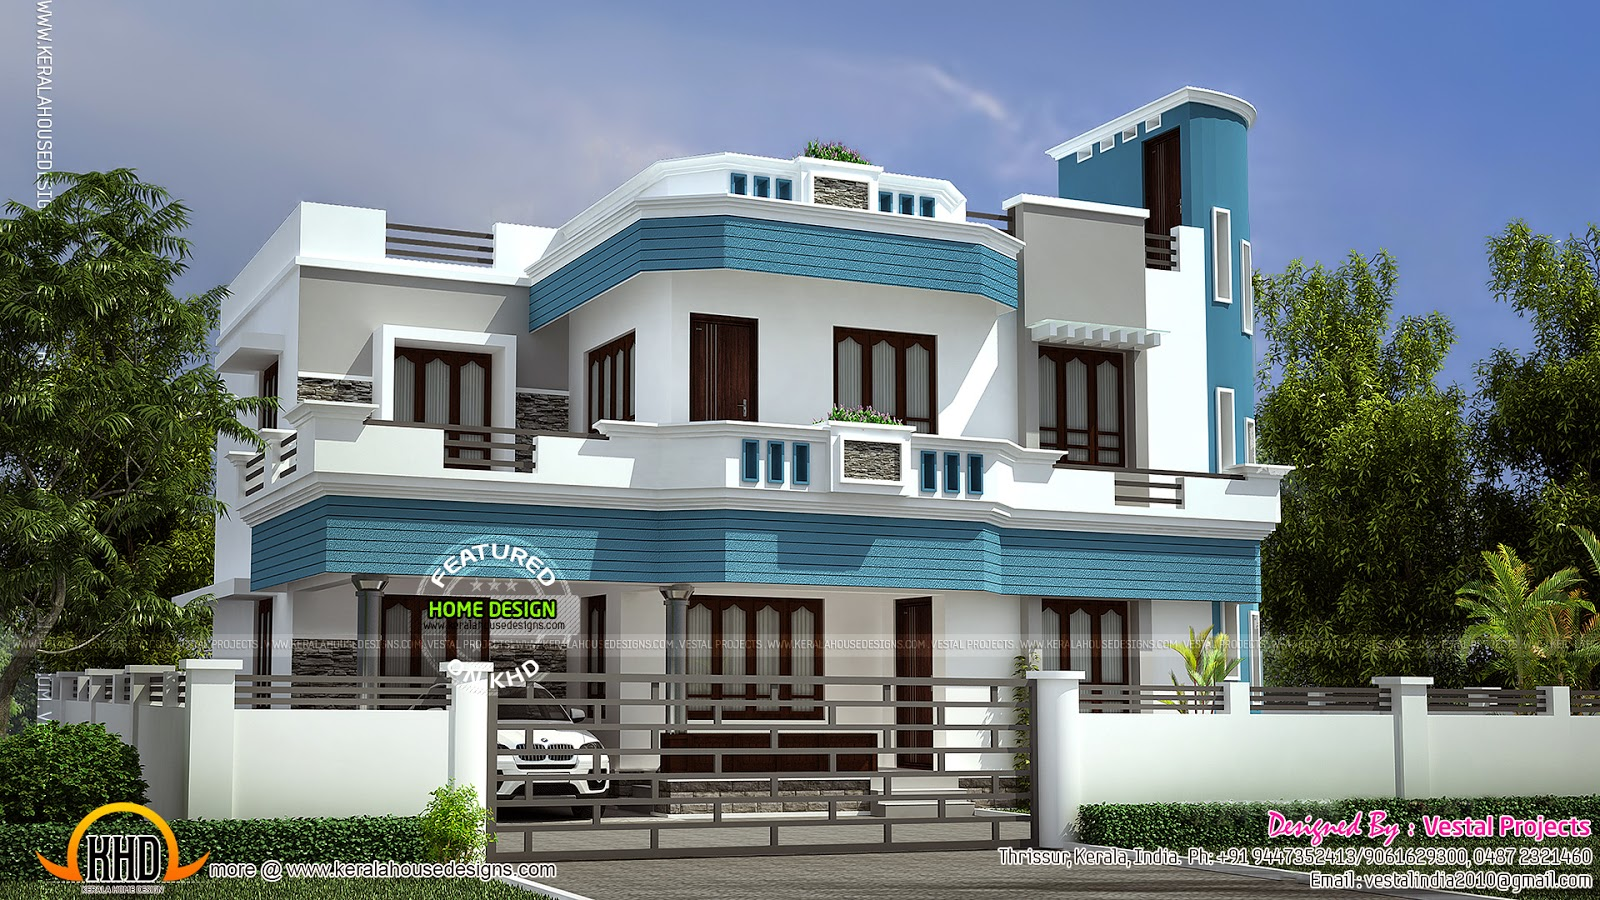 Awesome house by vestal projects kerala home design and for House design com